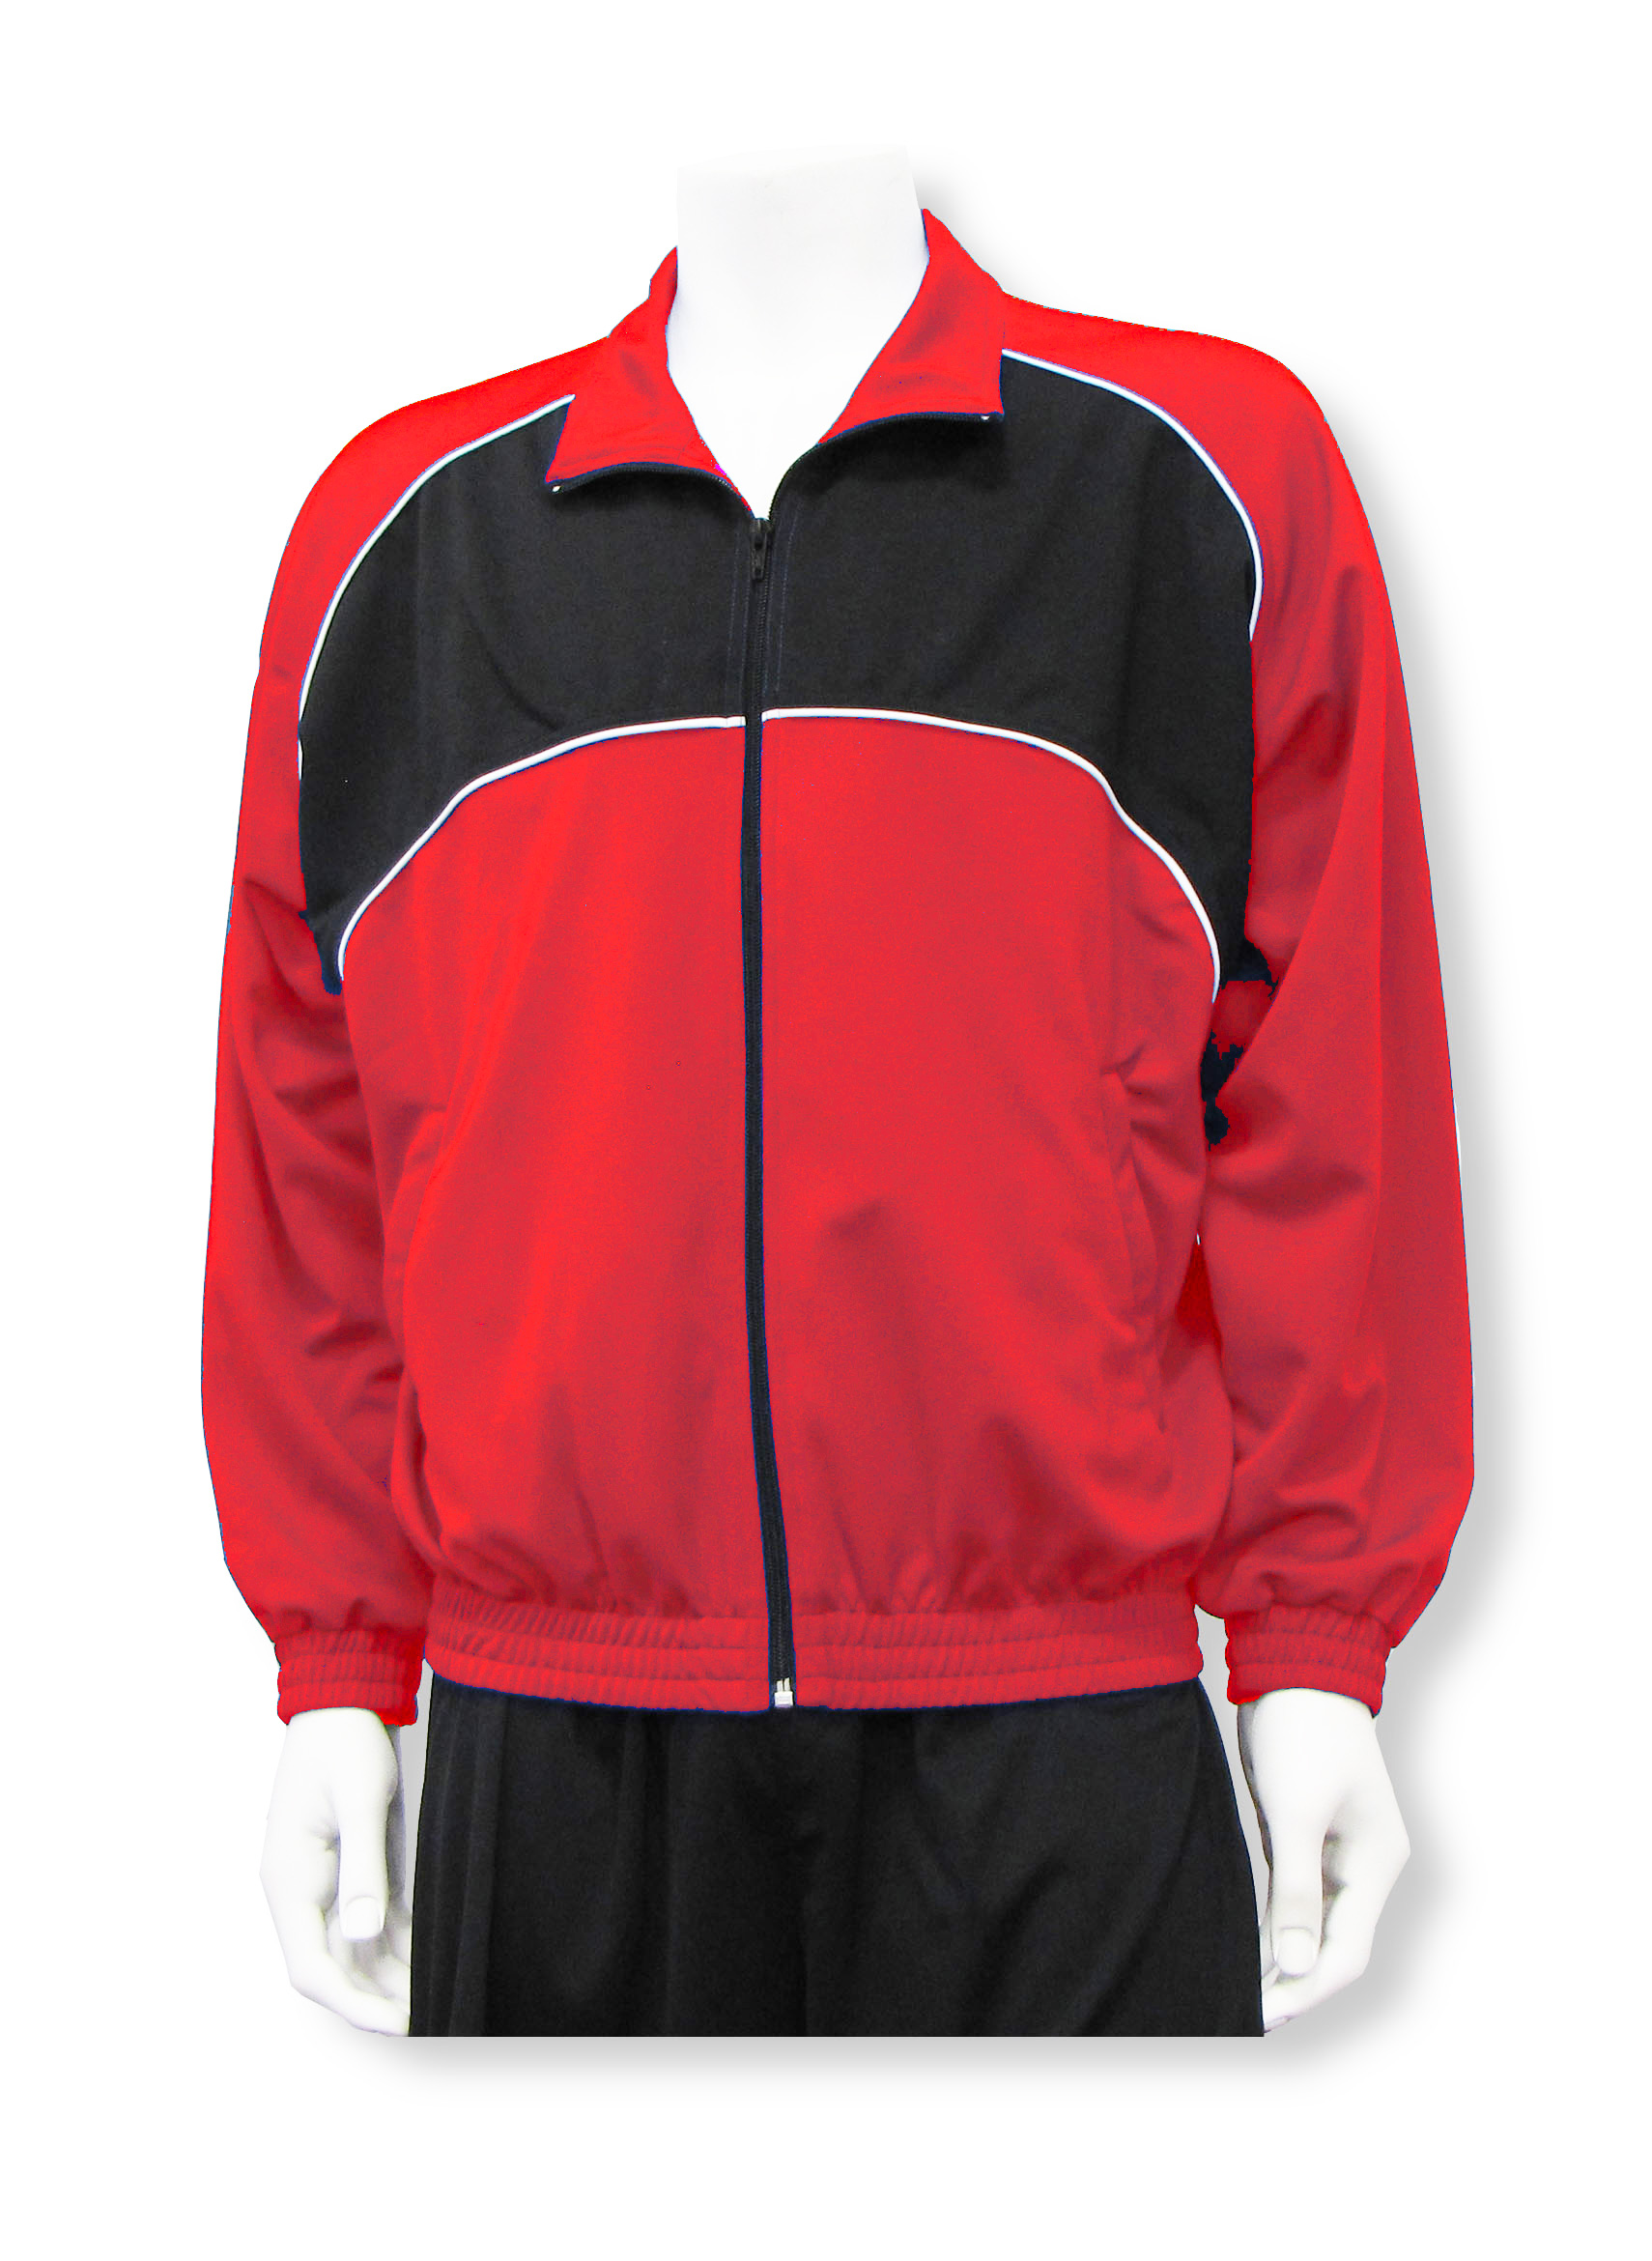 Crossfire soccer warmup jacket in black/red By Code Four Athletics